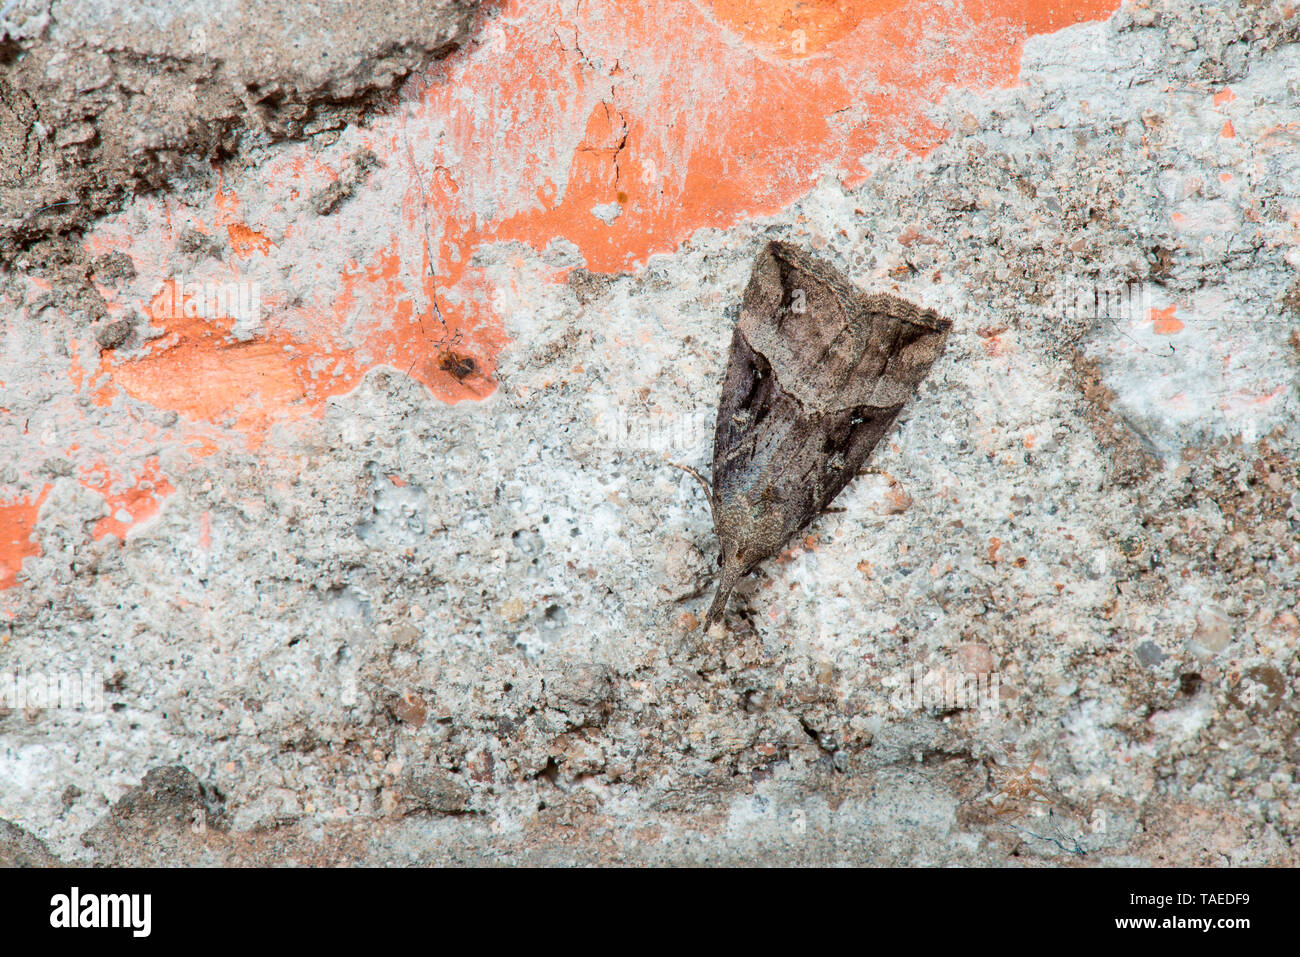 Buttoned Snout (Hypena rostralis) wintering cavernous butterfly, Mont Saint-Quentin Fort, Lorraine, France - Stock Image